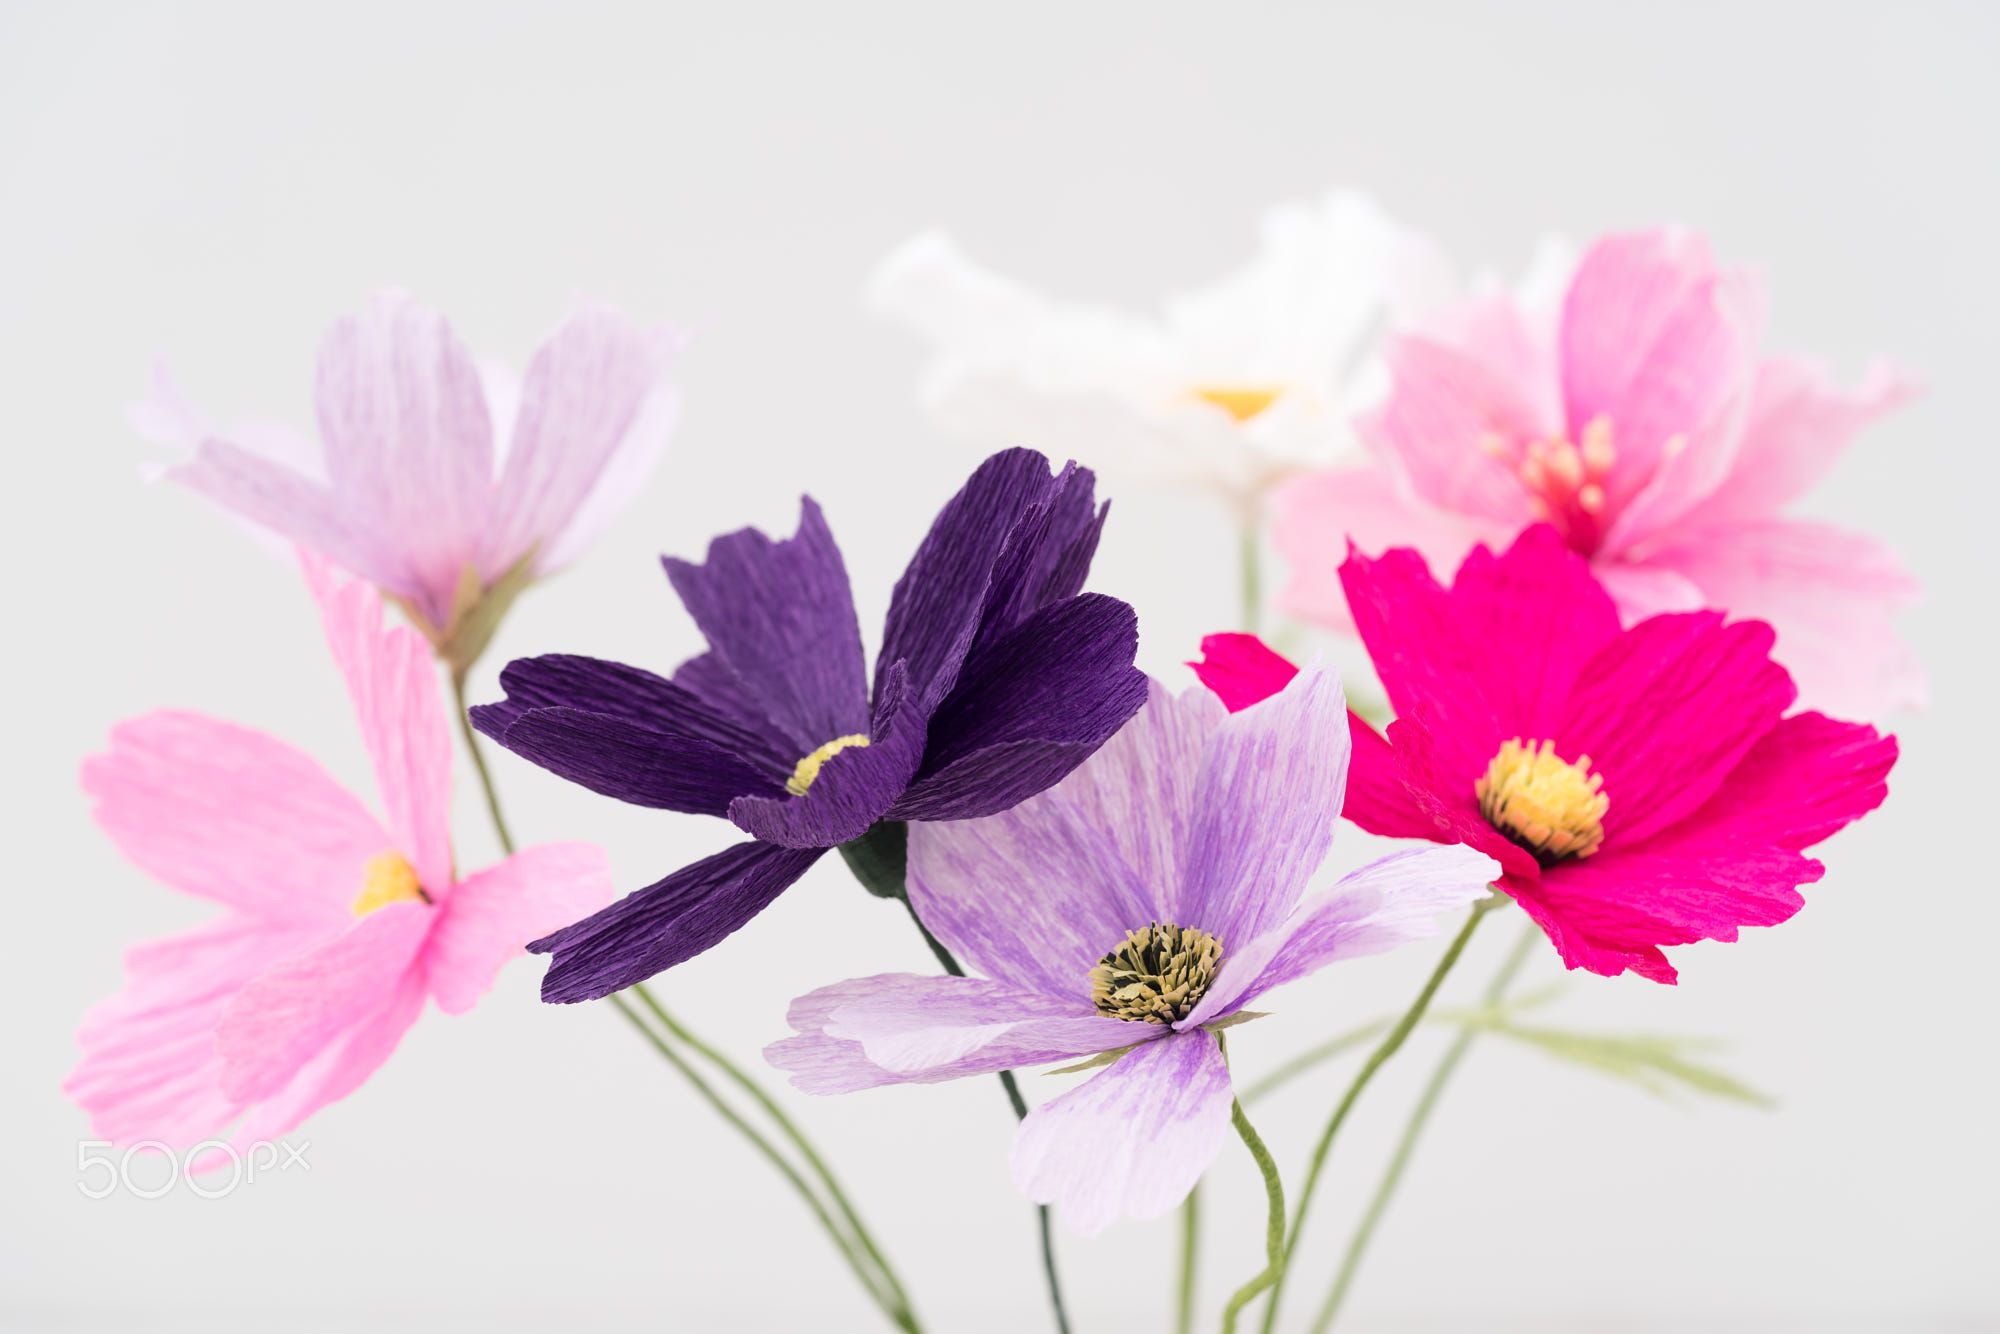 Crepe paper cosmos flower bouquet on white | 18.03.18 | Pinterest ...